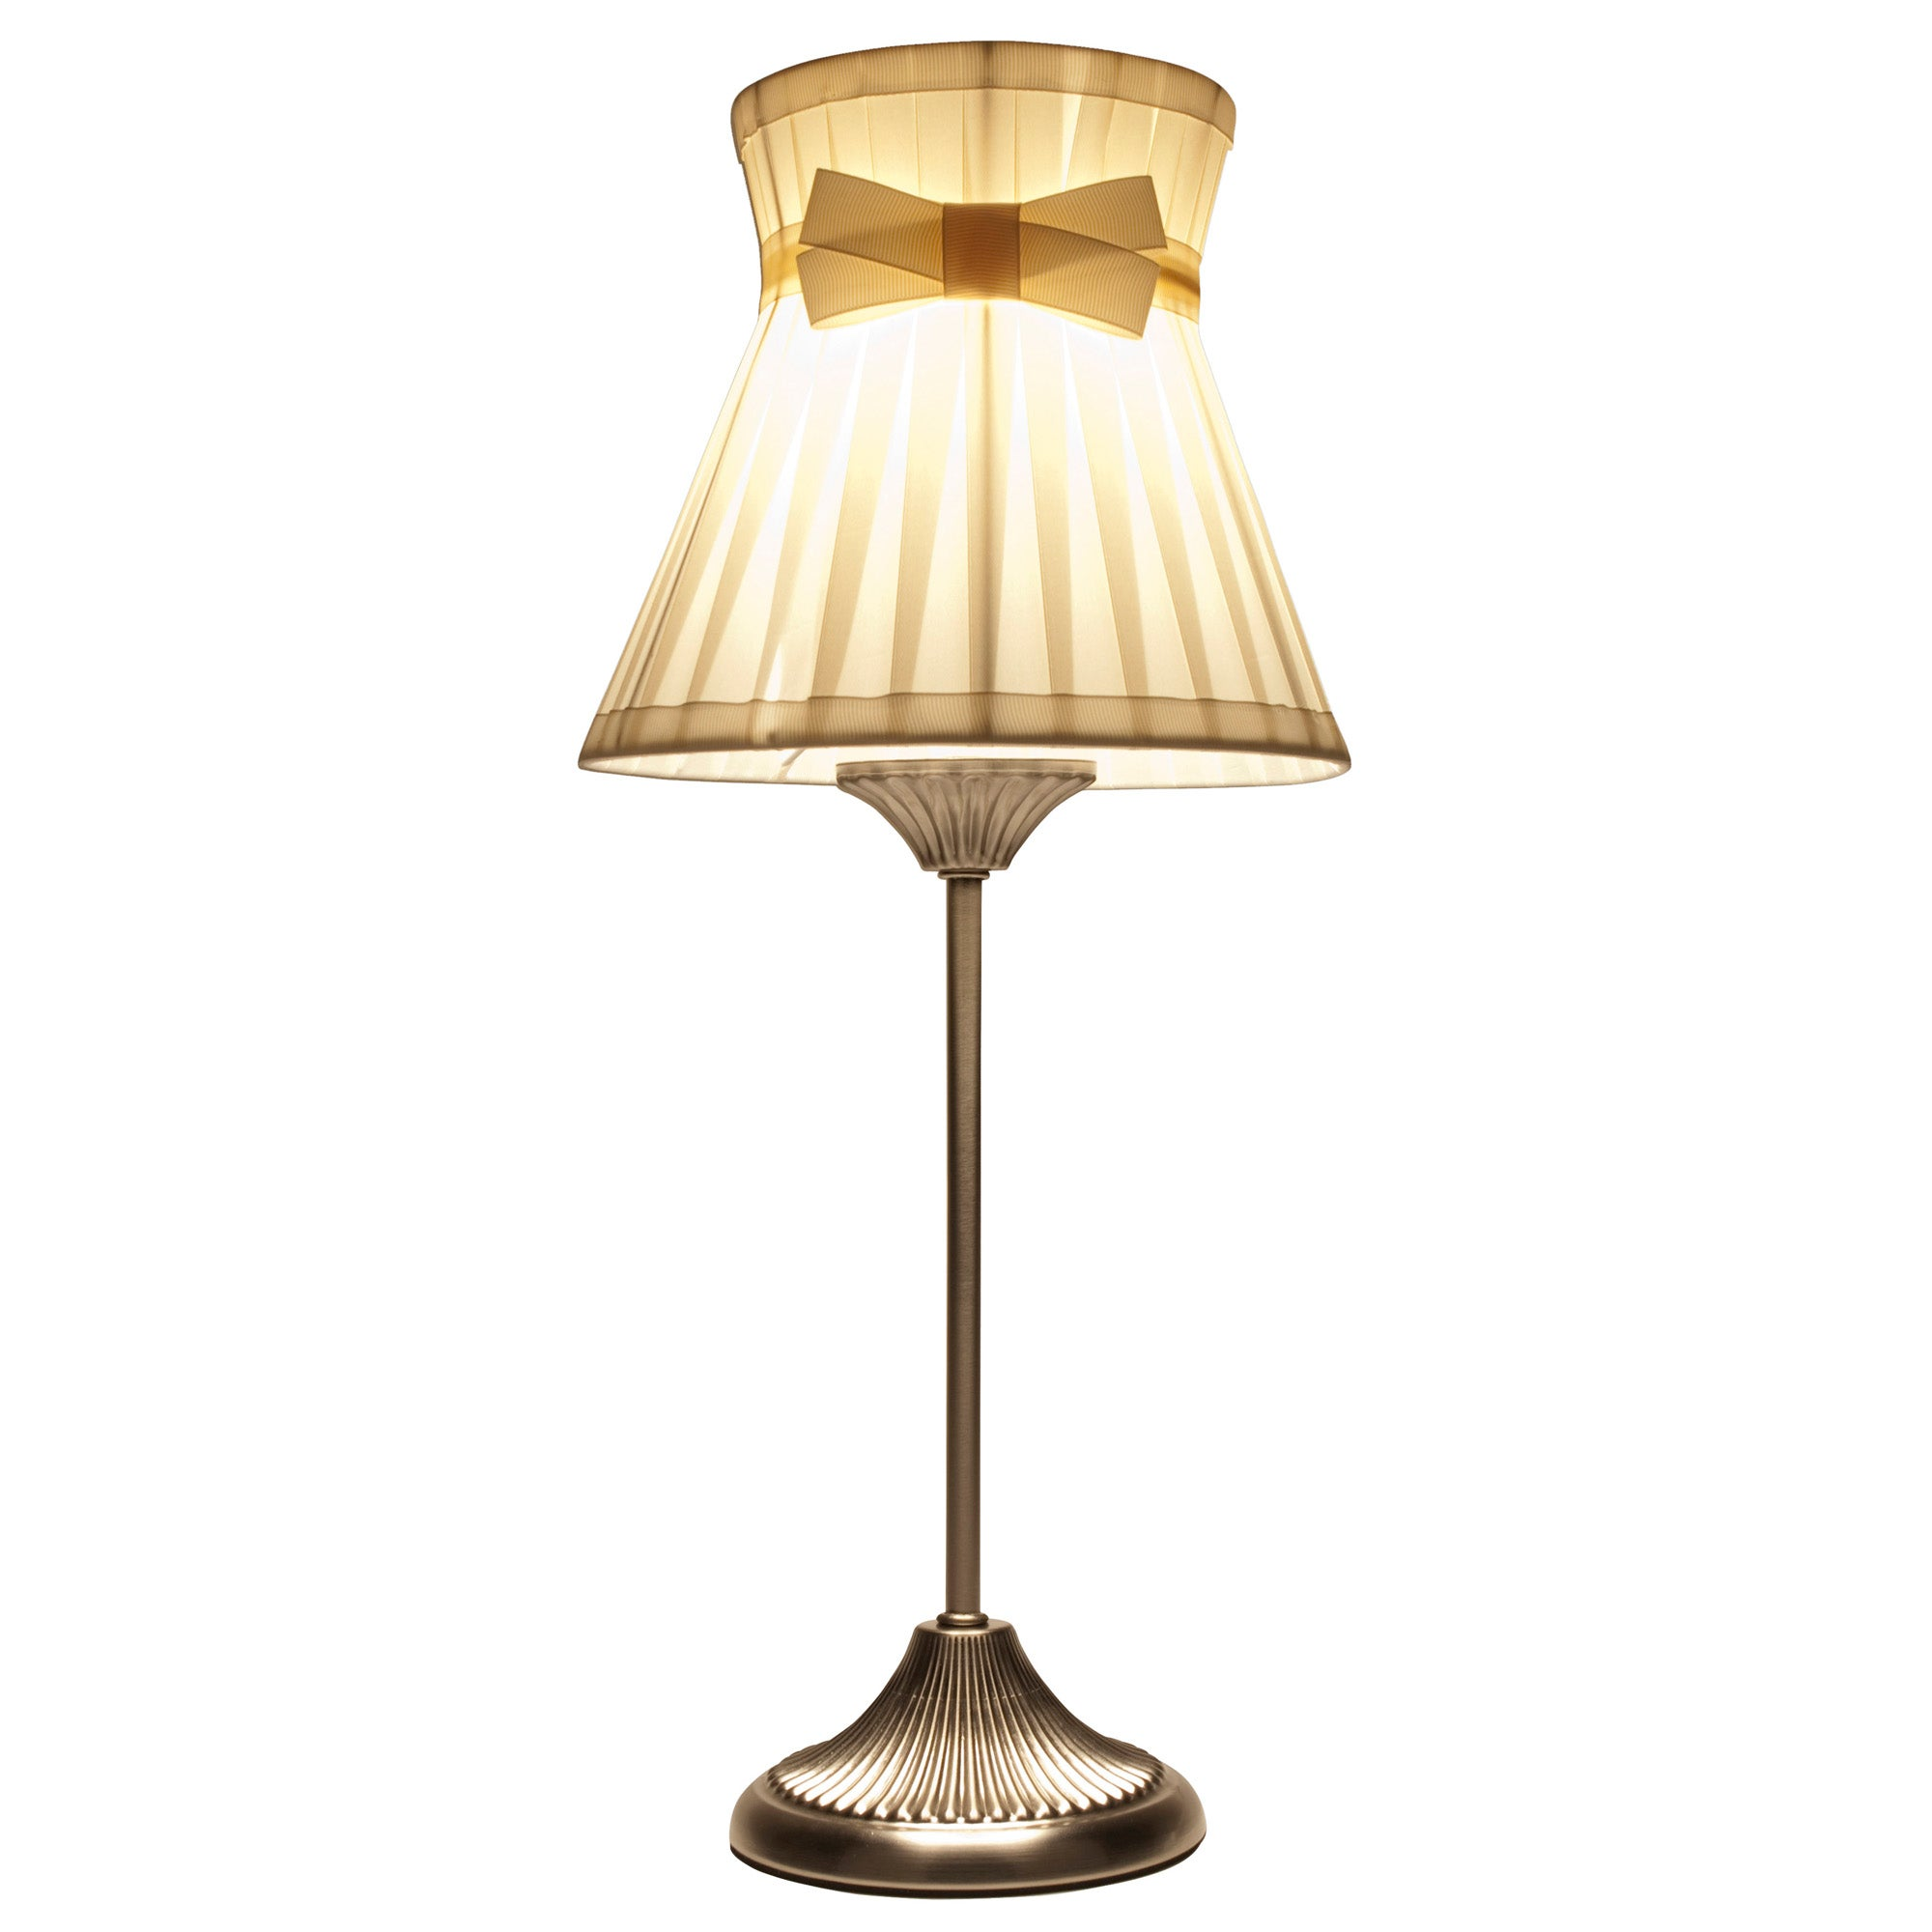 Hilda Waist Pleat Table Lamp